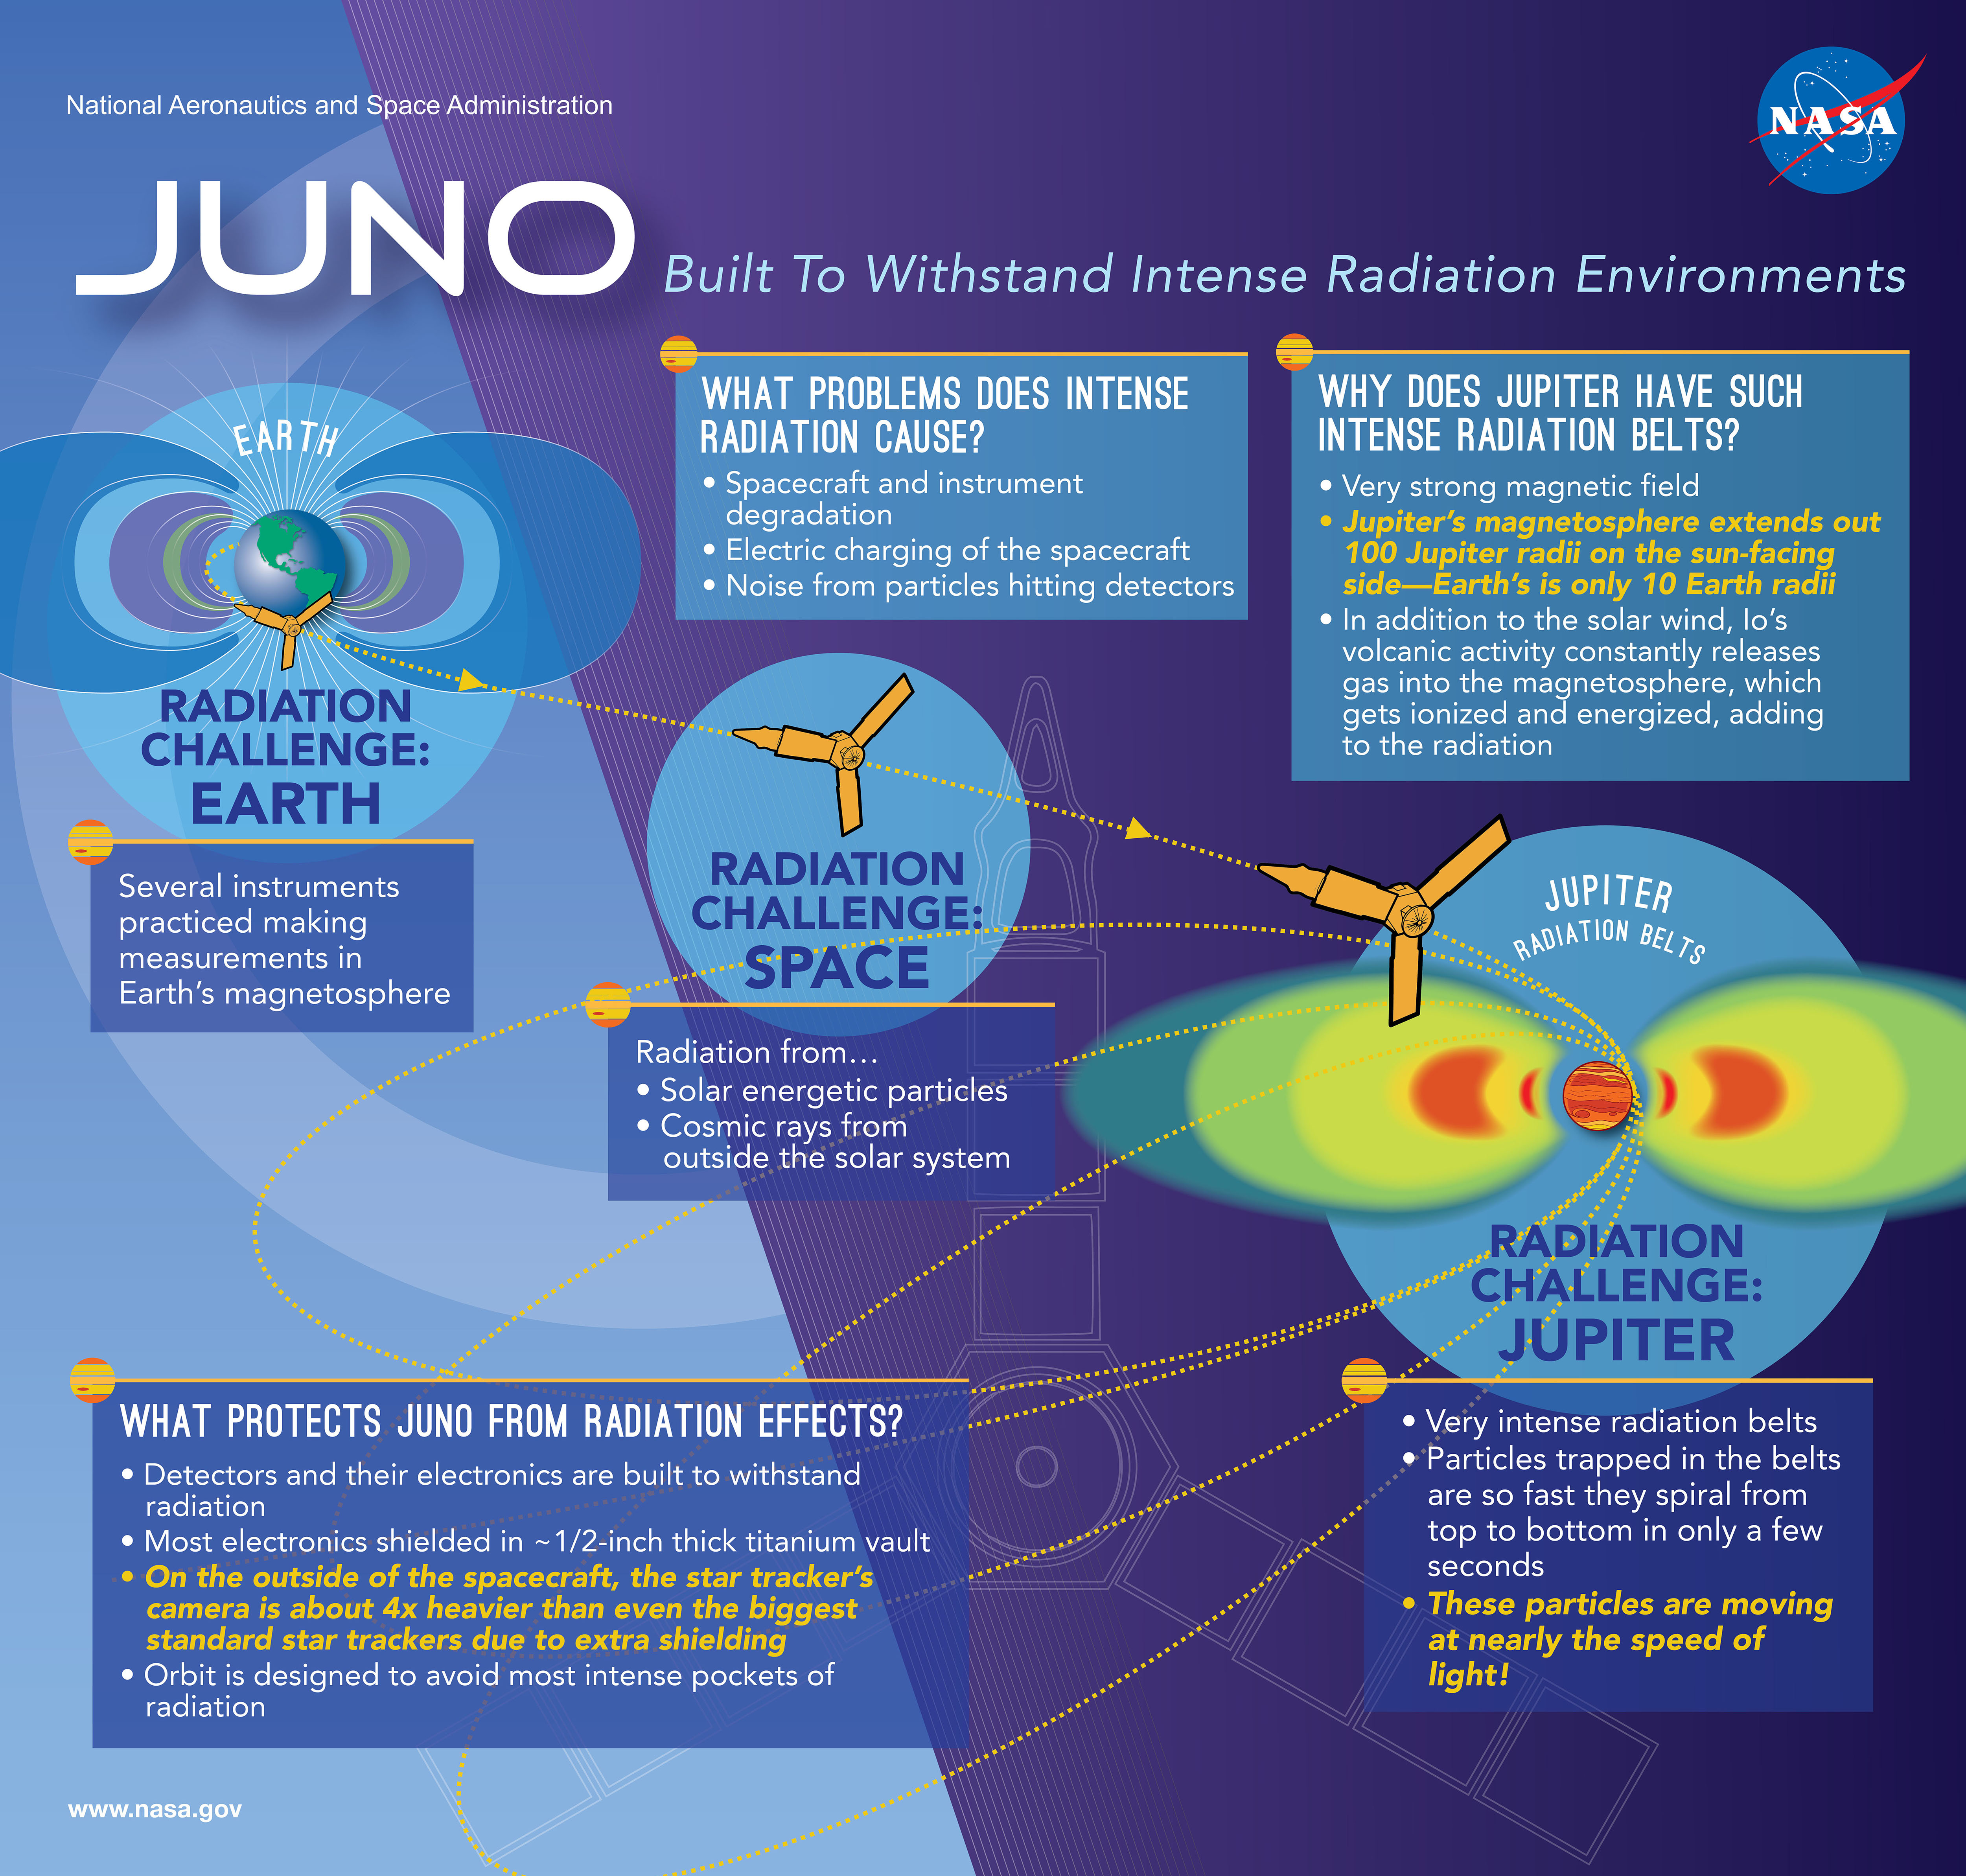 Juno launched for Jupiter in 2011 to study the gas giant's atmosphere, aurora, gravity and magnetic field. This infographic illustrates the radiation environments Juno has traveled through on its journey near Earth and in interplanetary space. All of space is filled with particles, and when these particles move at high speeds, they're called radiation. With its insertion into orbit around Jupiter, Juno will now study one of the most intense radiation environments in the solar system. Credit: NASA/JPL-Caltech